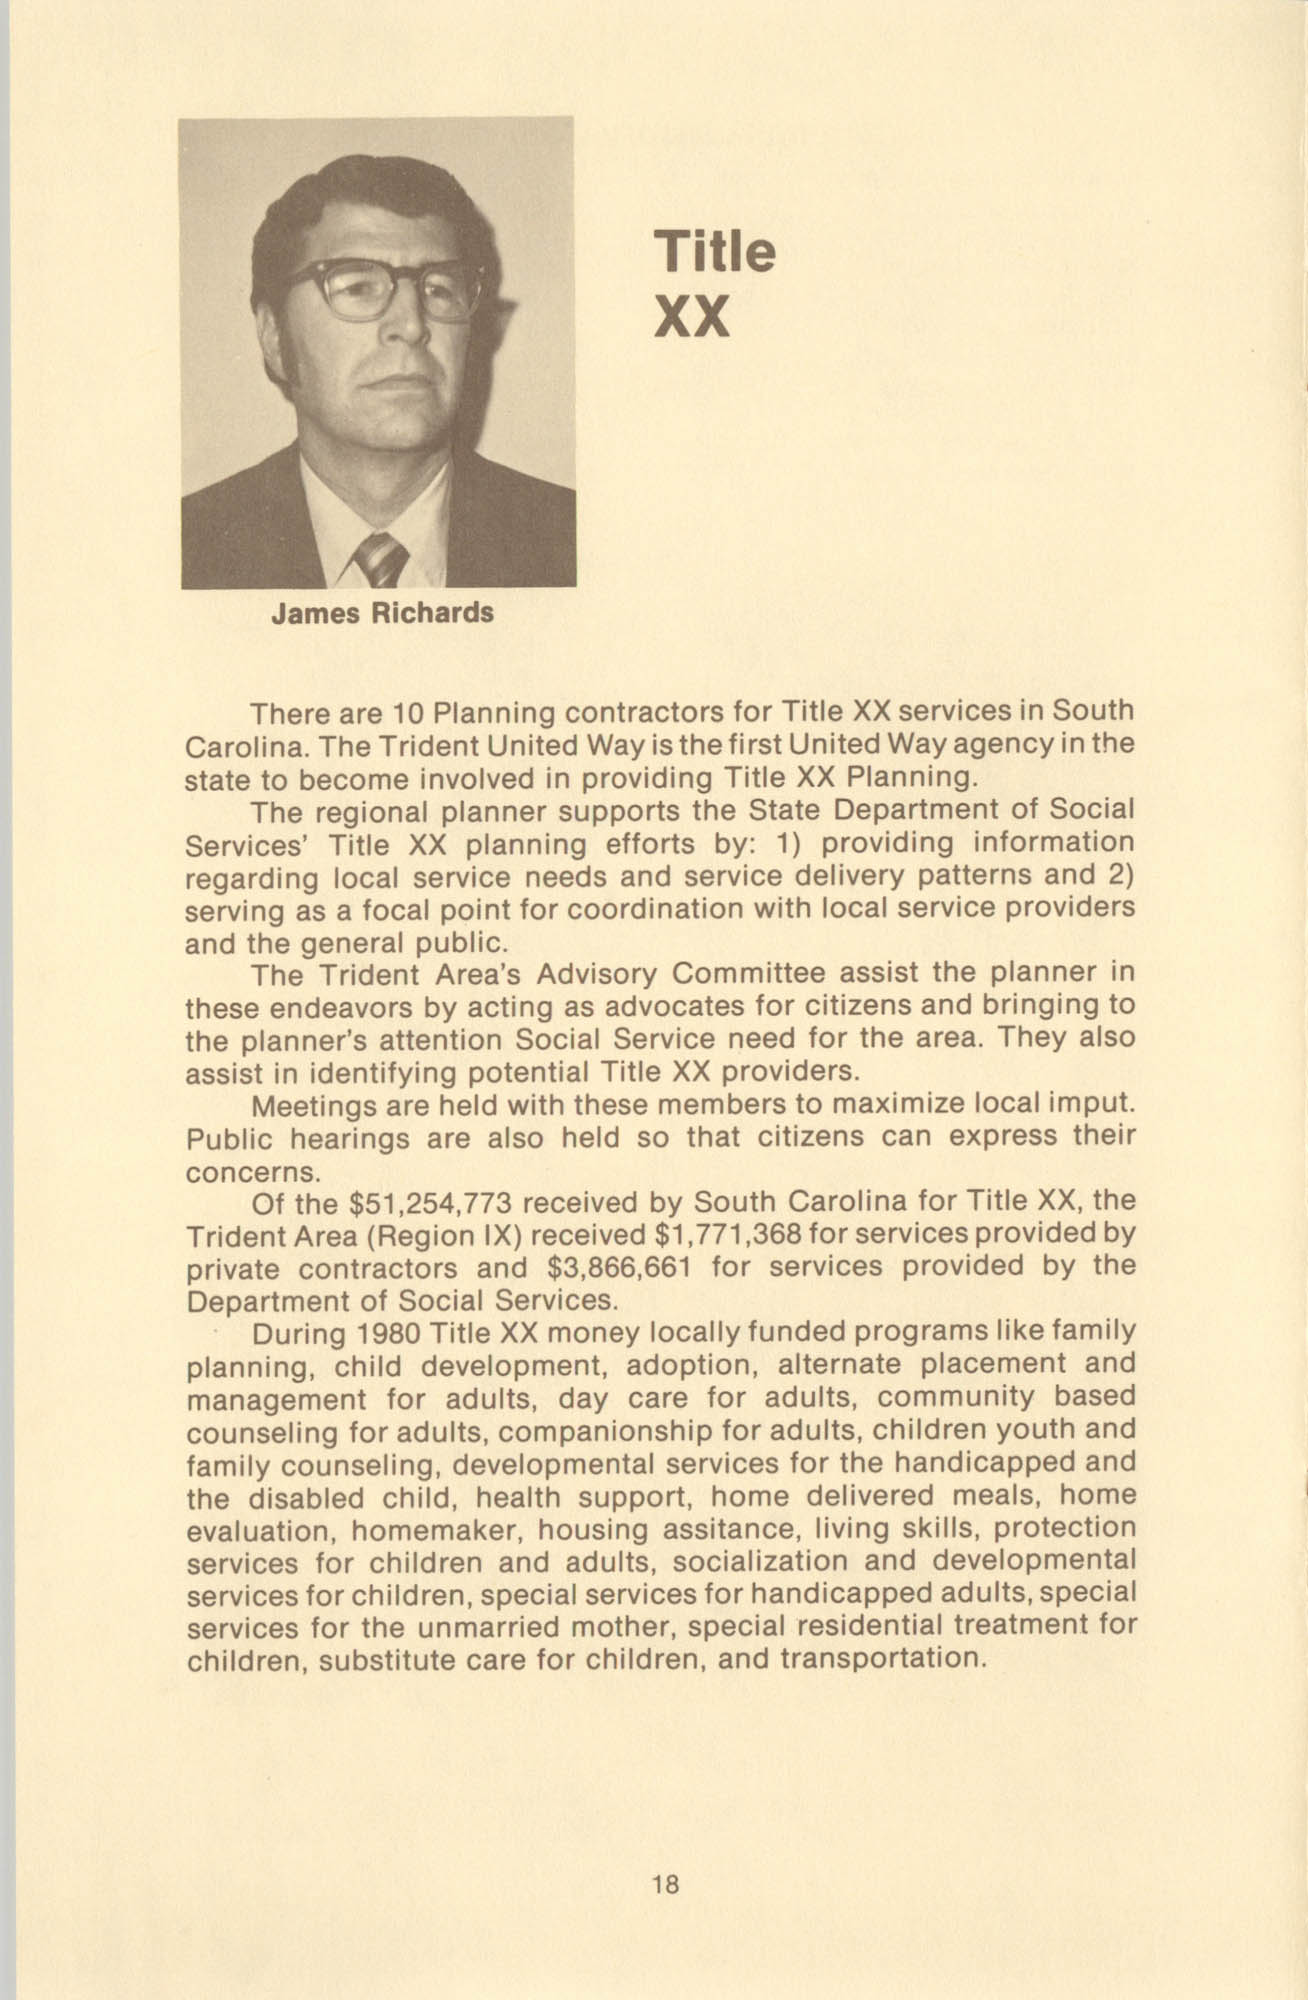 Trident United Way Annual Report, 1980, Page 18